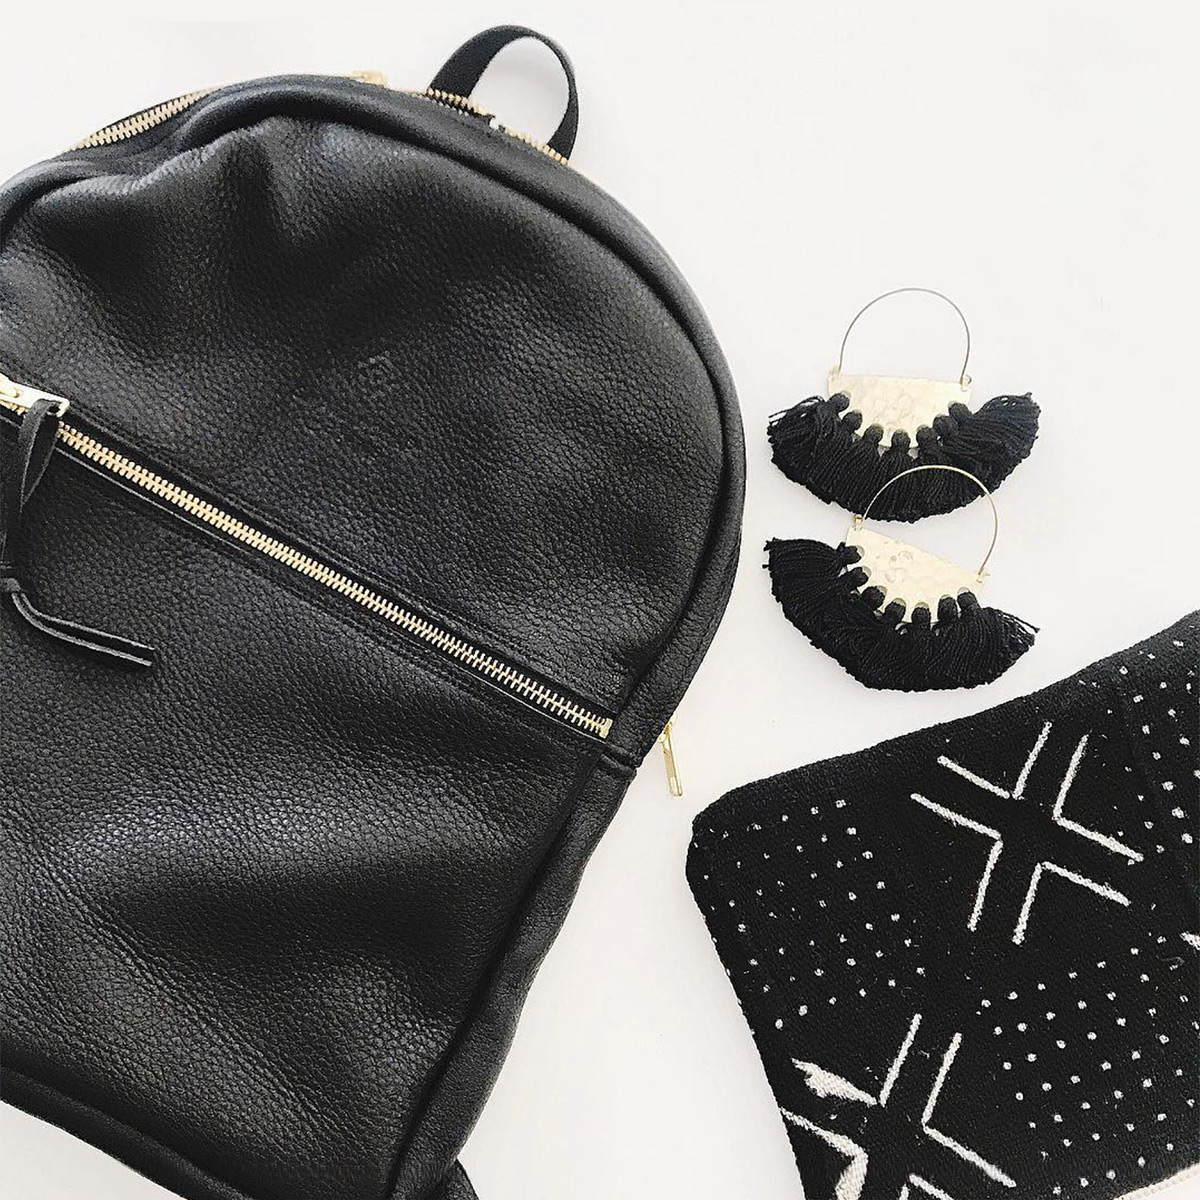 Small World Dream backpack and clutch bag